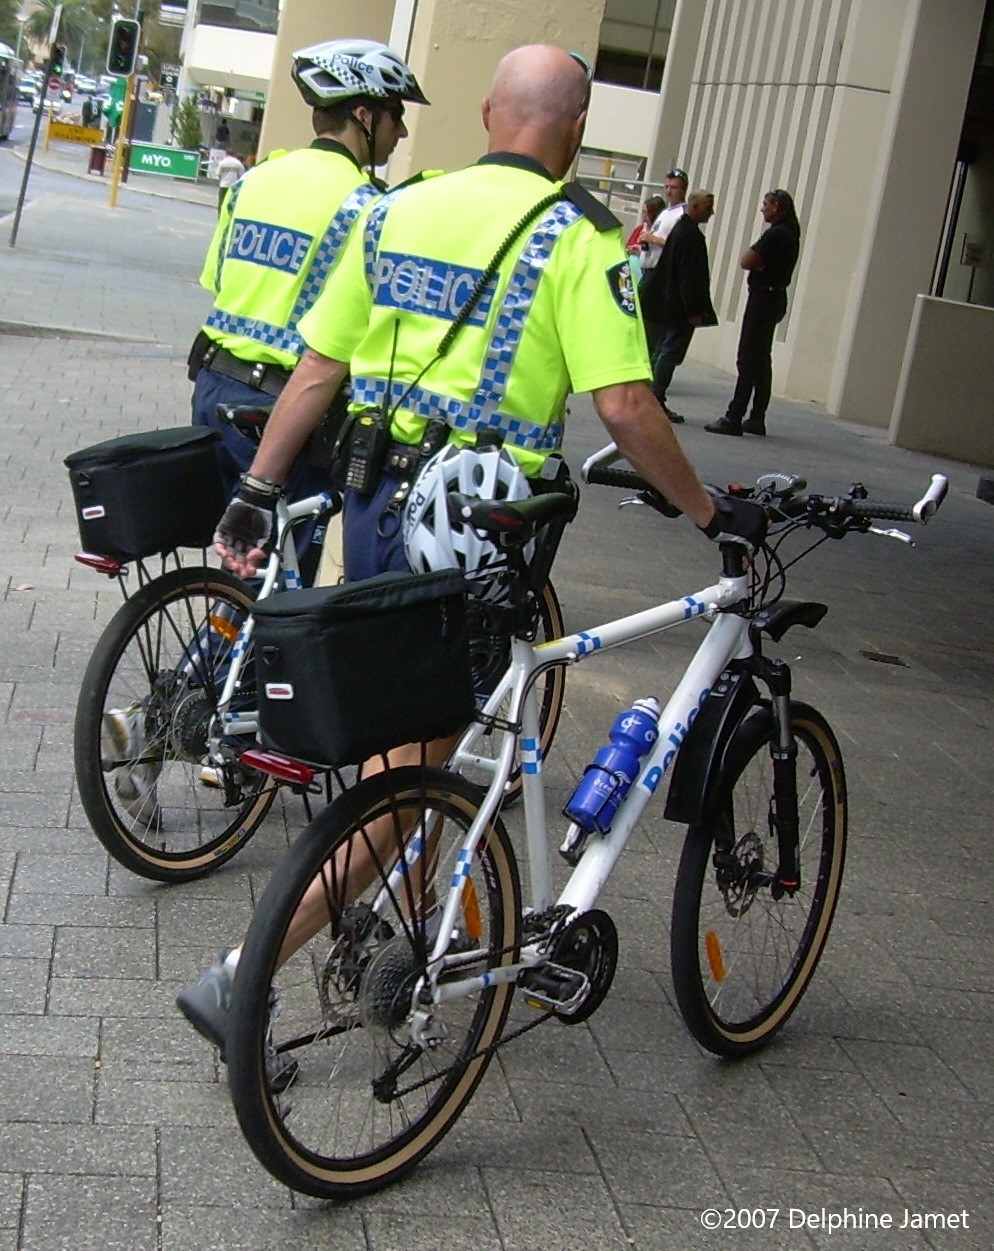 Western Australia Bicycle Section police officers at Perth Magistrates Court on Hay Street effort to curb crime and anti-social presence high visible crime prevention